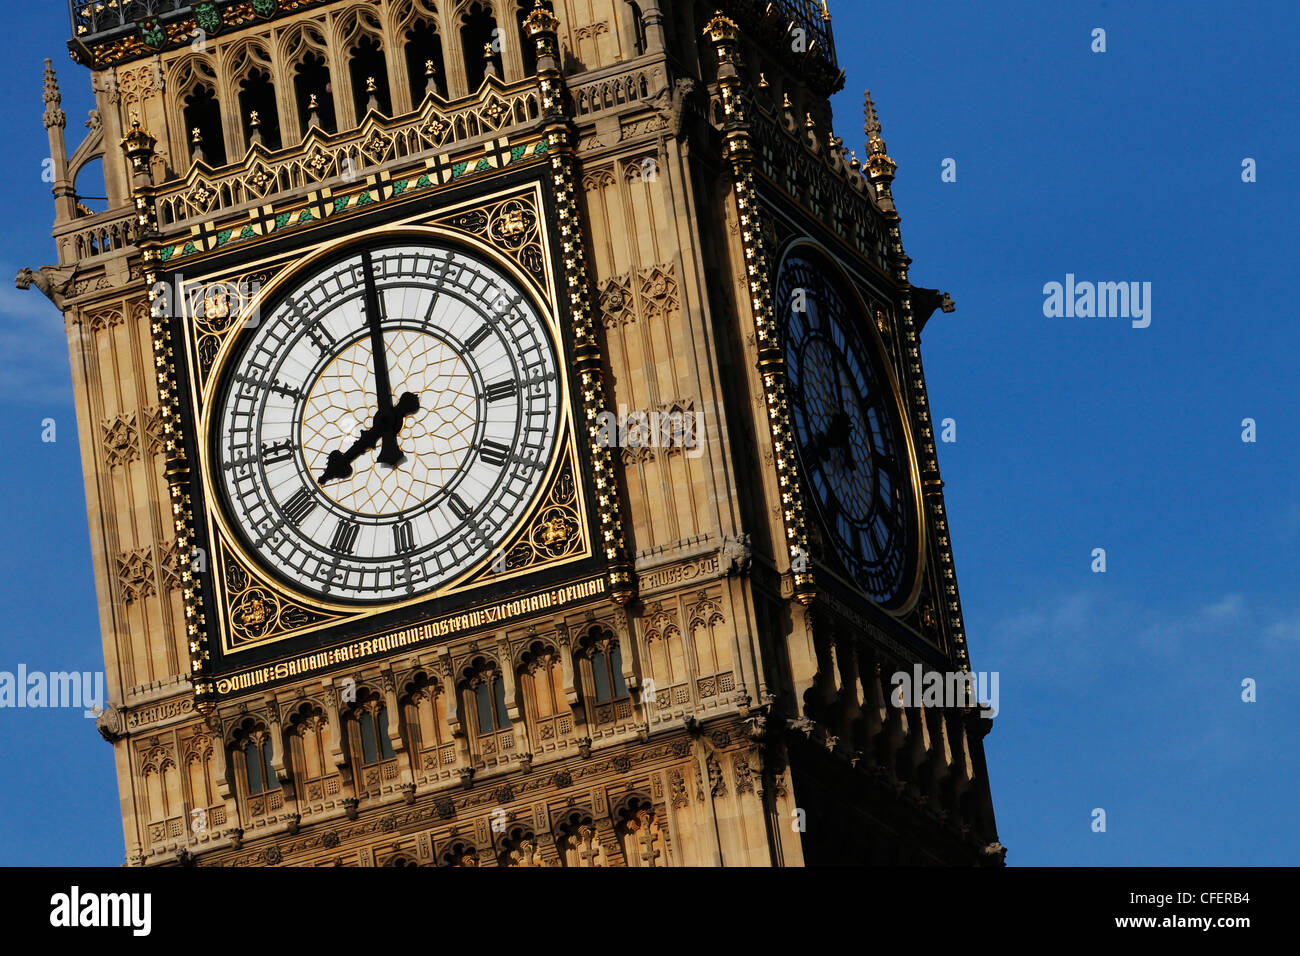 Westminster Palace, Britain's Houses of Parliament and Big Ben clock tower in London - Stock Image